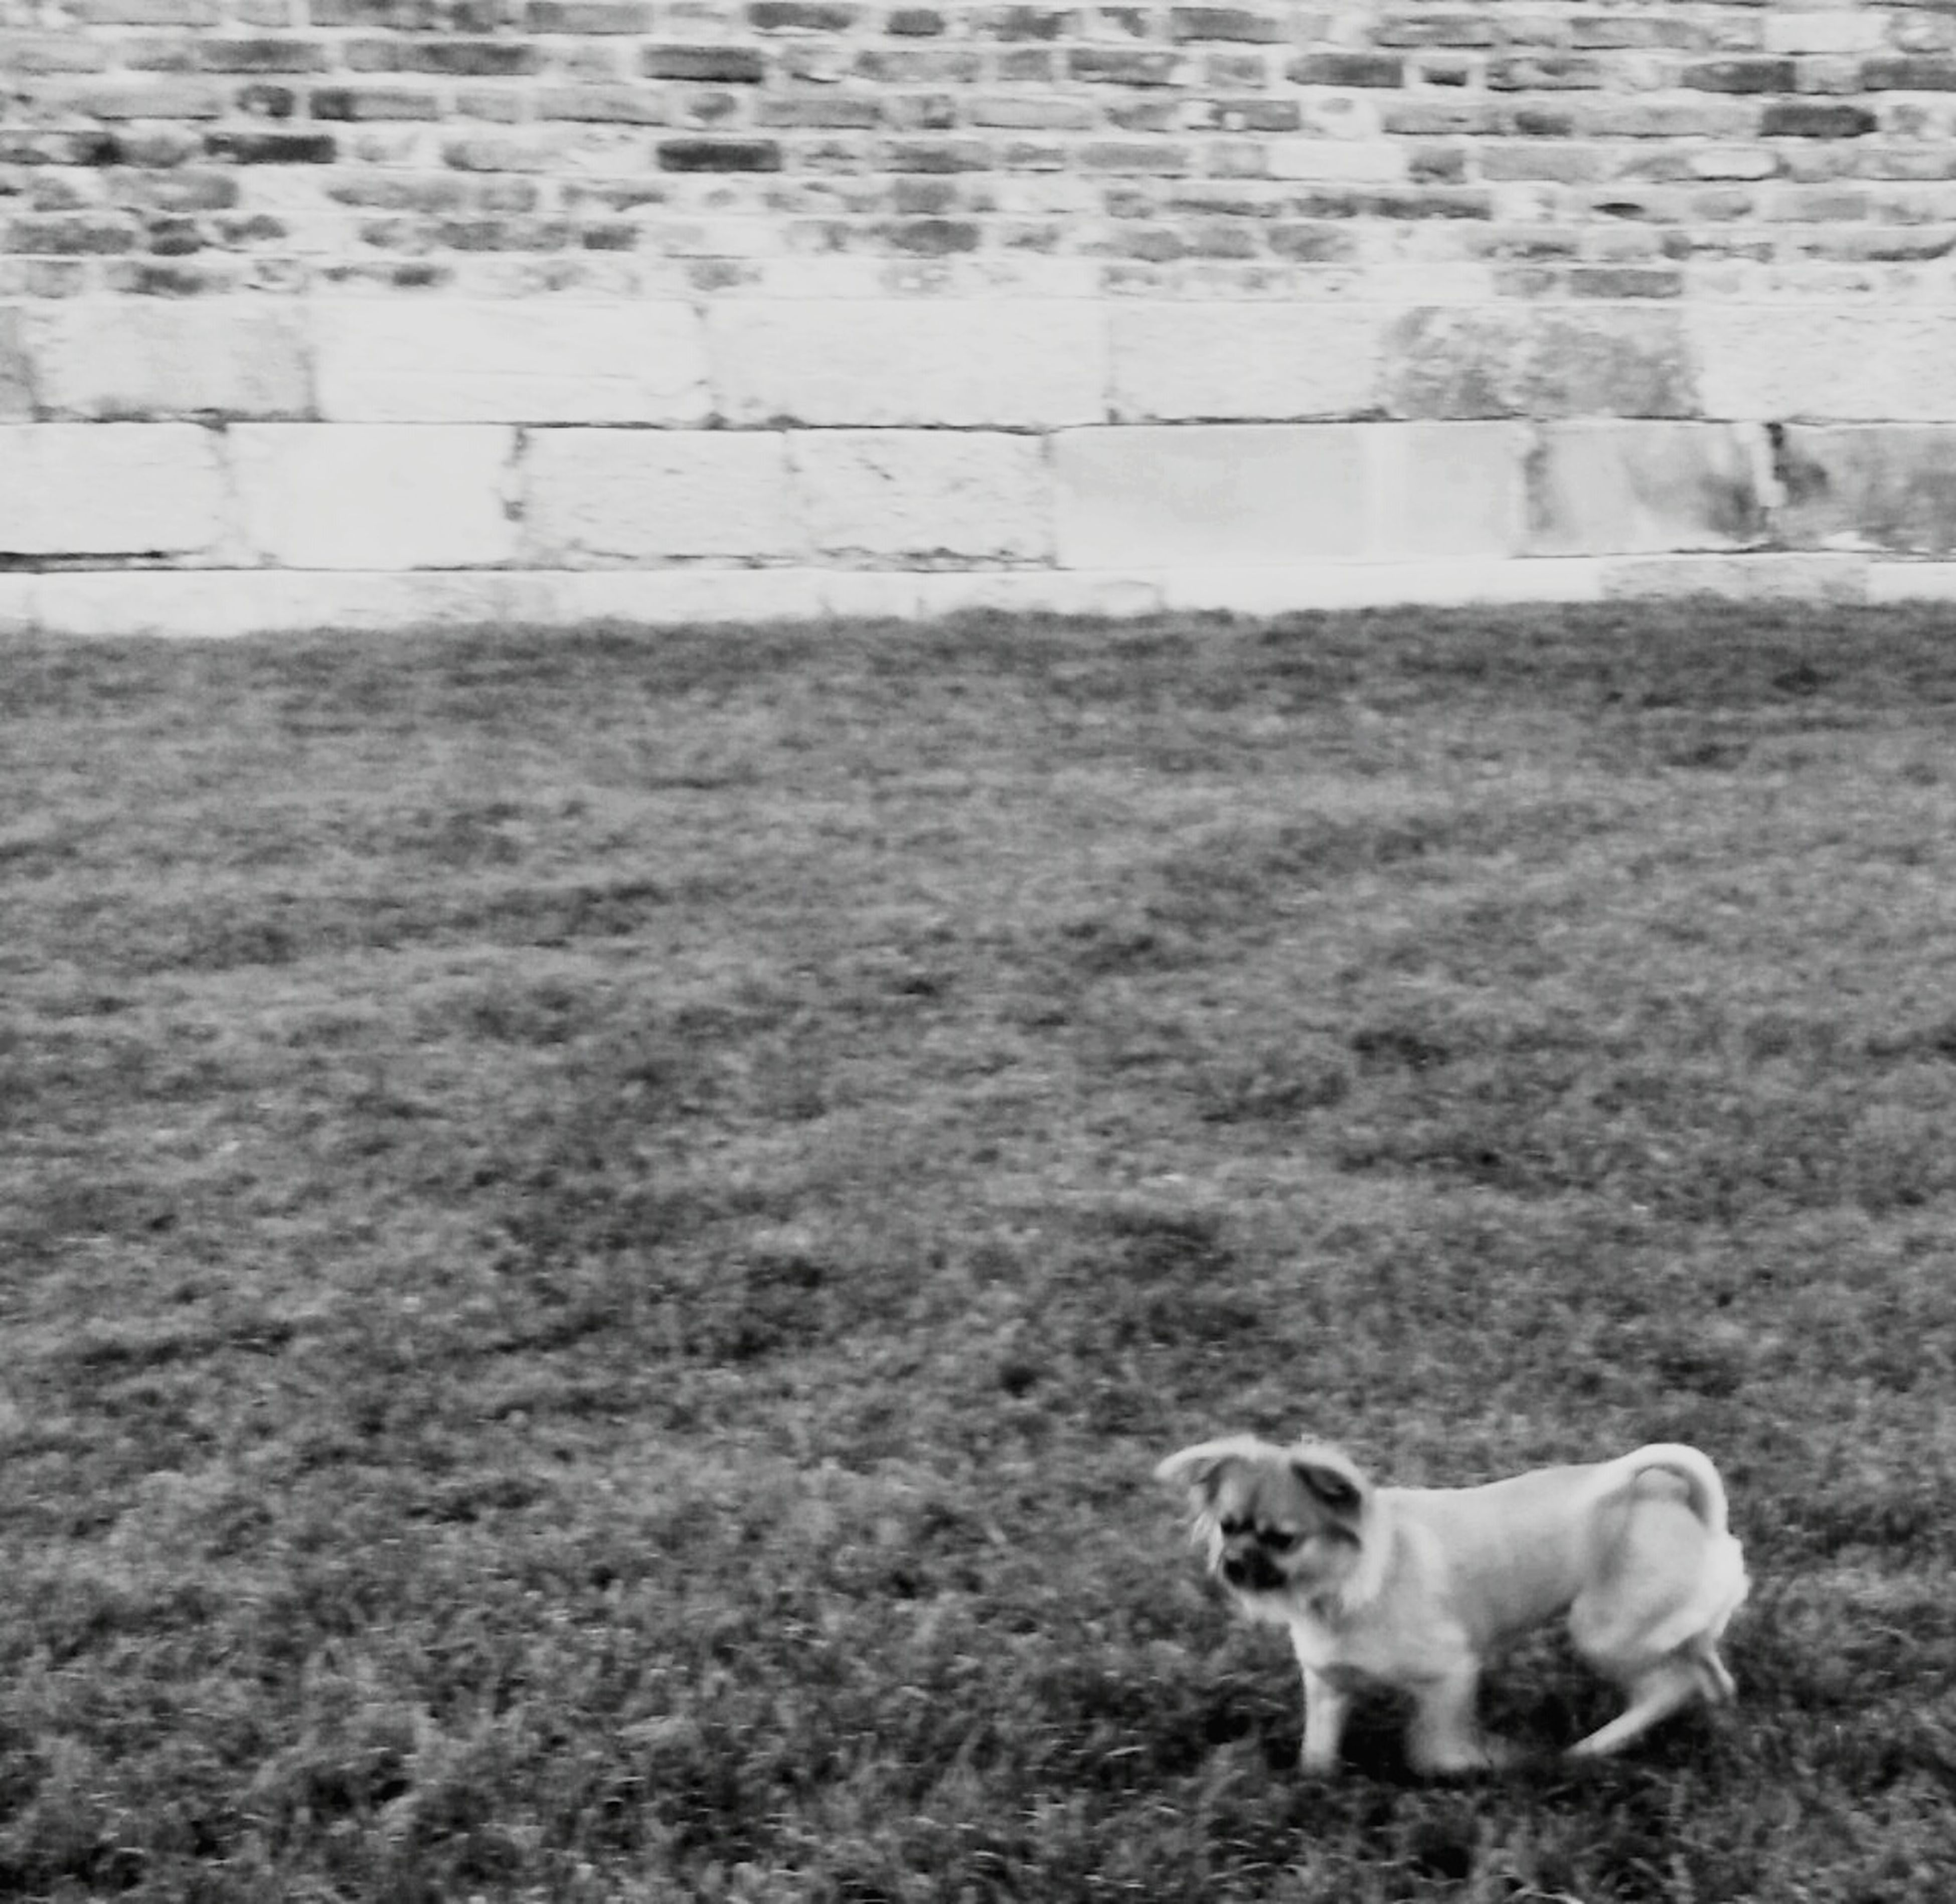 domestic animals, animal themes, mammal, pets, dog, one animal, grass, field, high angle view, two animals, no people, outdoors, day, built structure, building exterior, full length, architecture, nature, canine, grassy